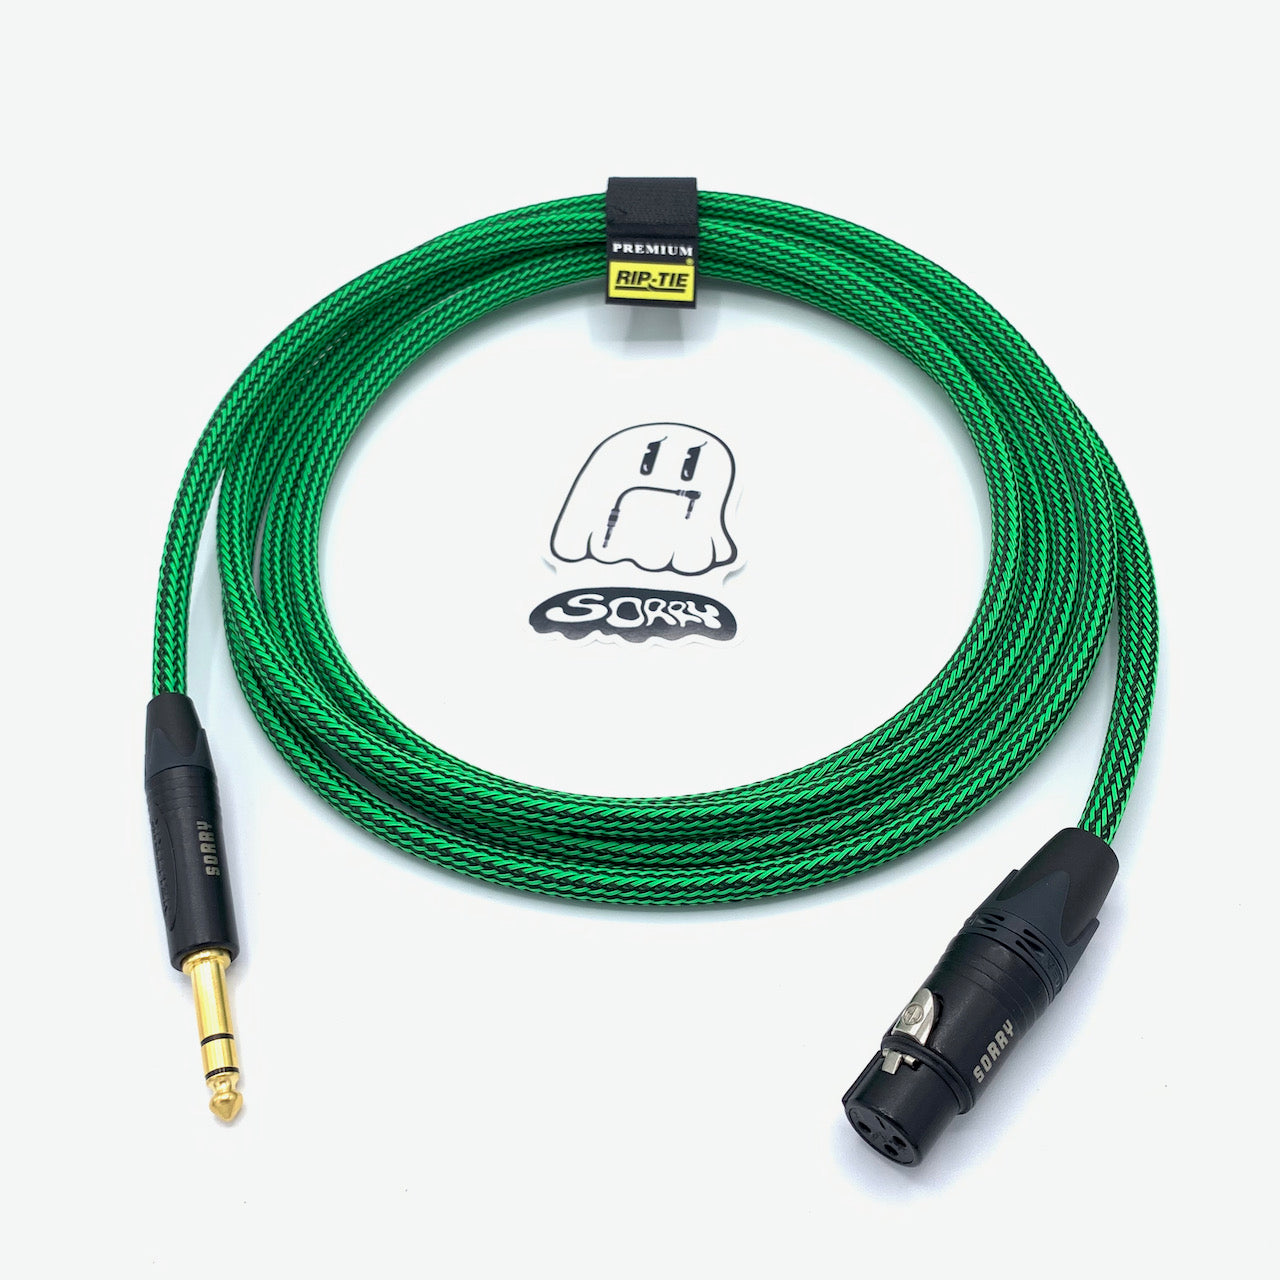 "SORRY XLR Female to 1/4"" TRS Male Cable - Ogre"